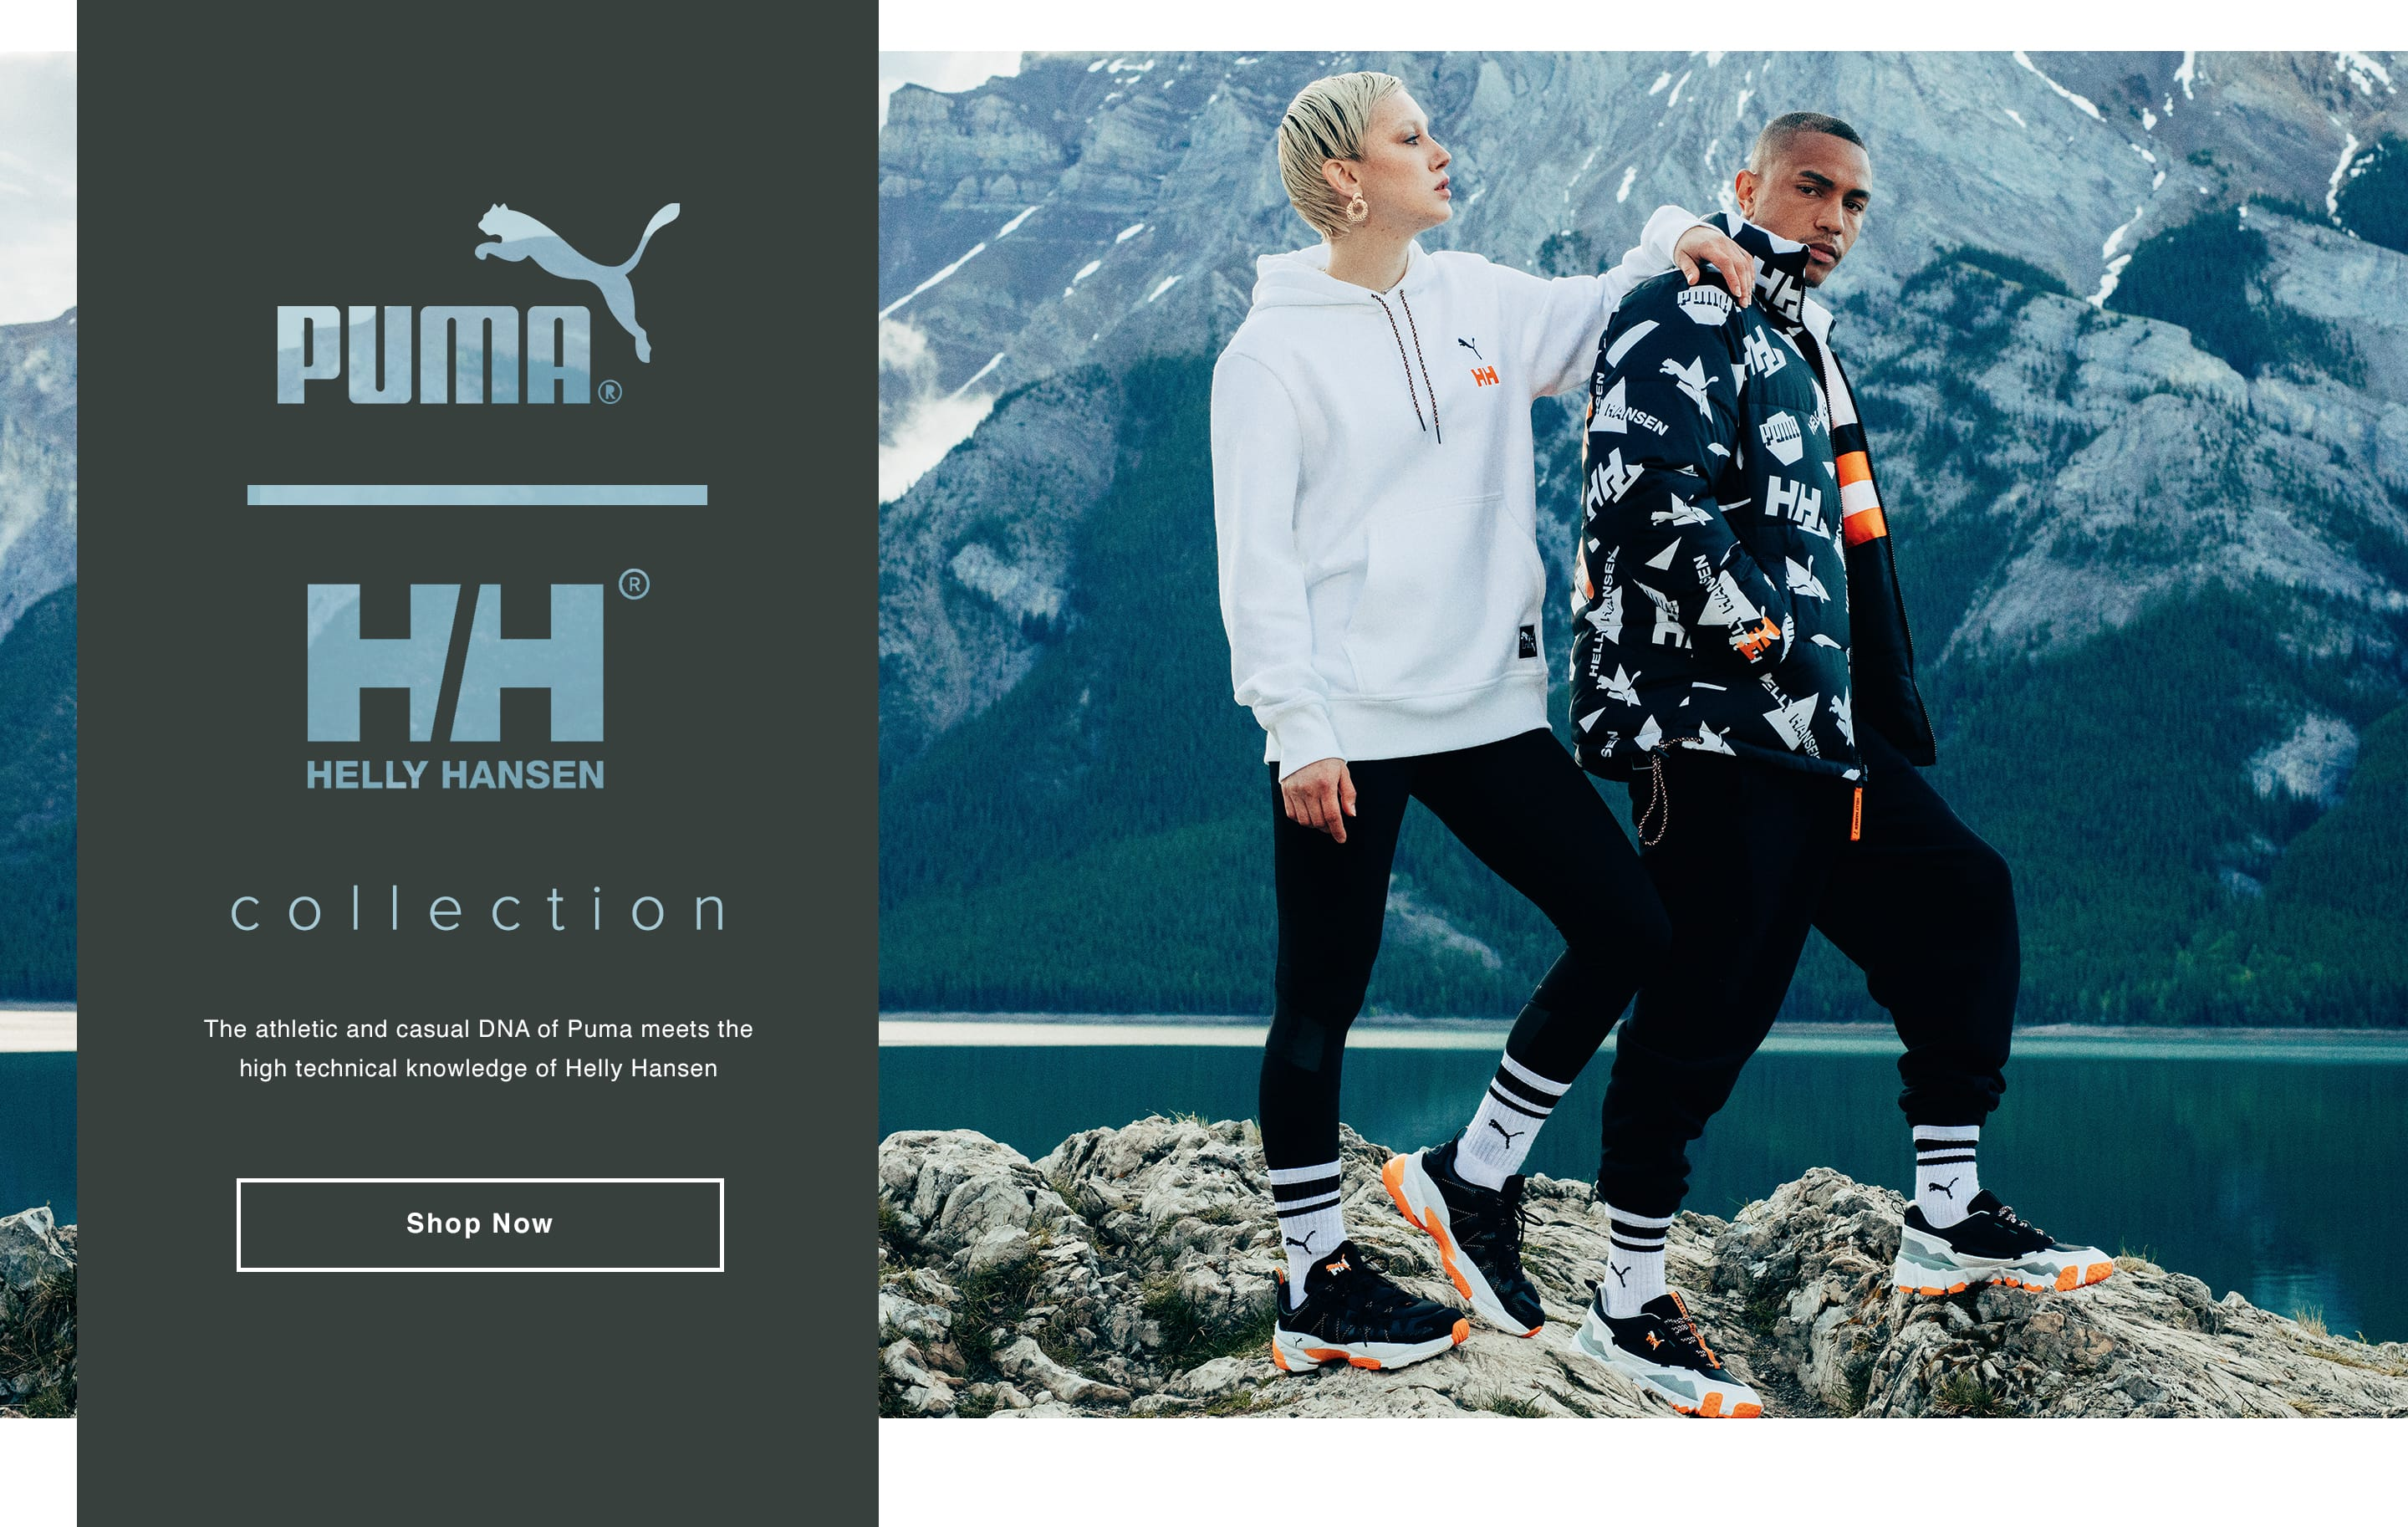 Puma Helly Hansen Collection